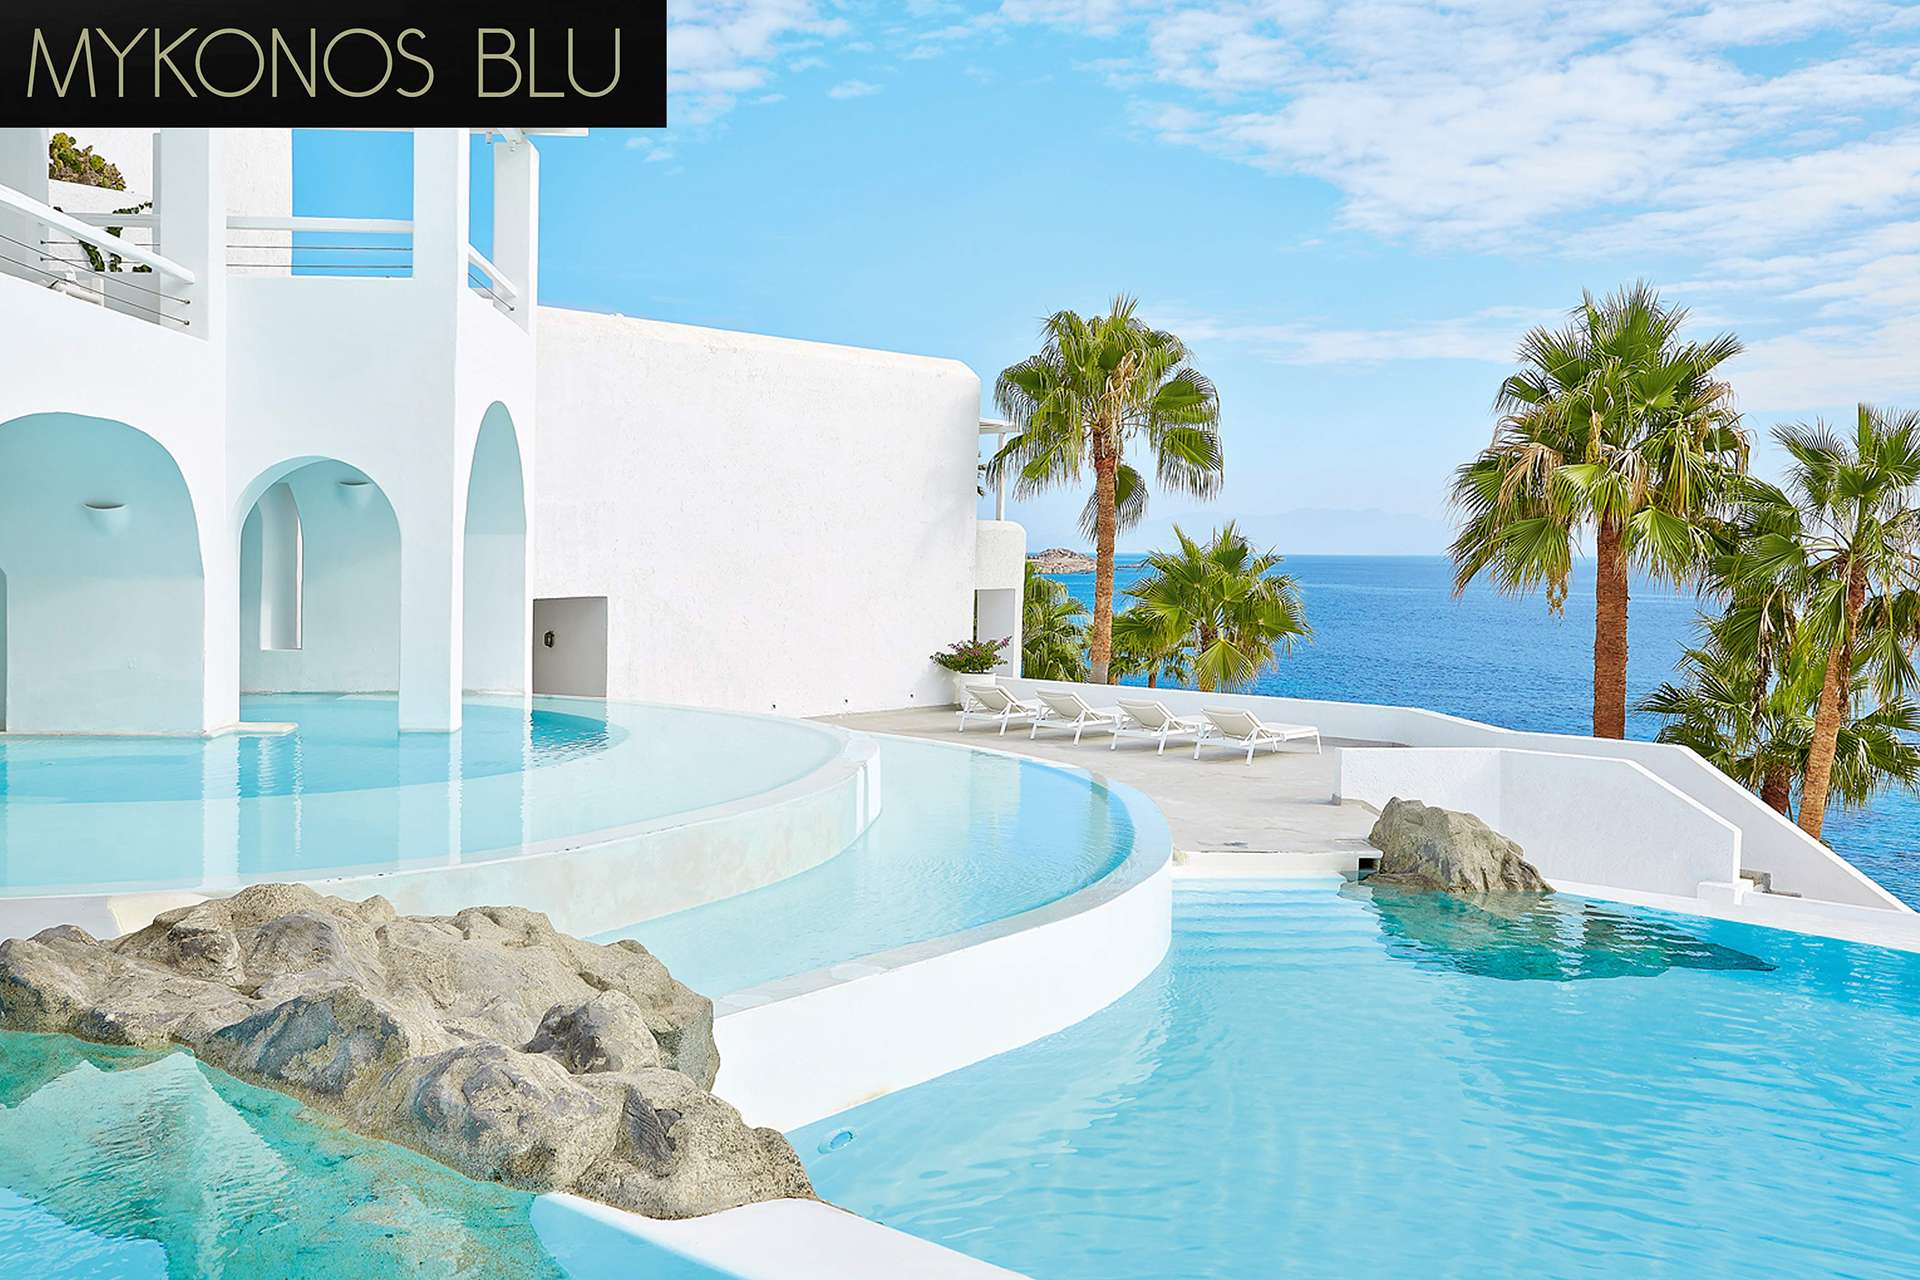 mykonos-blu-resort-and-spa-hotel-mykonos-exclusive